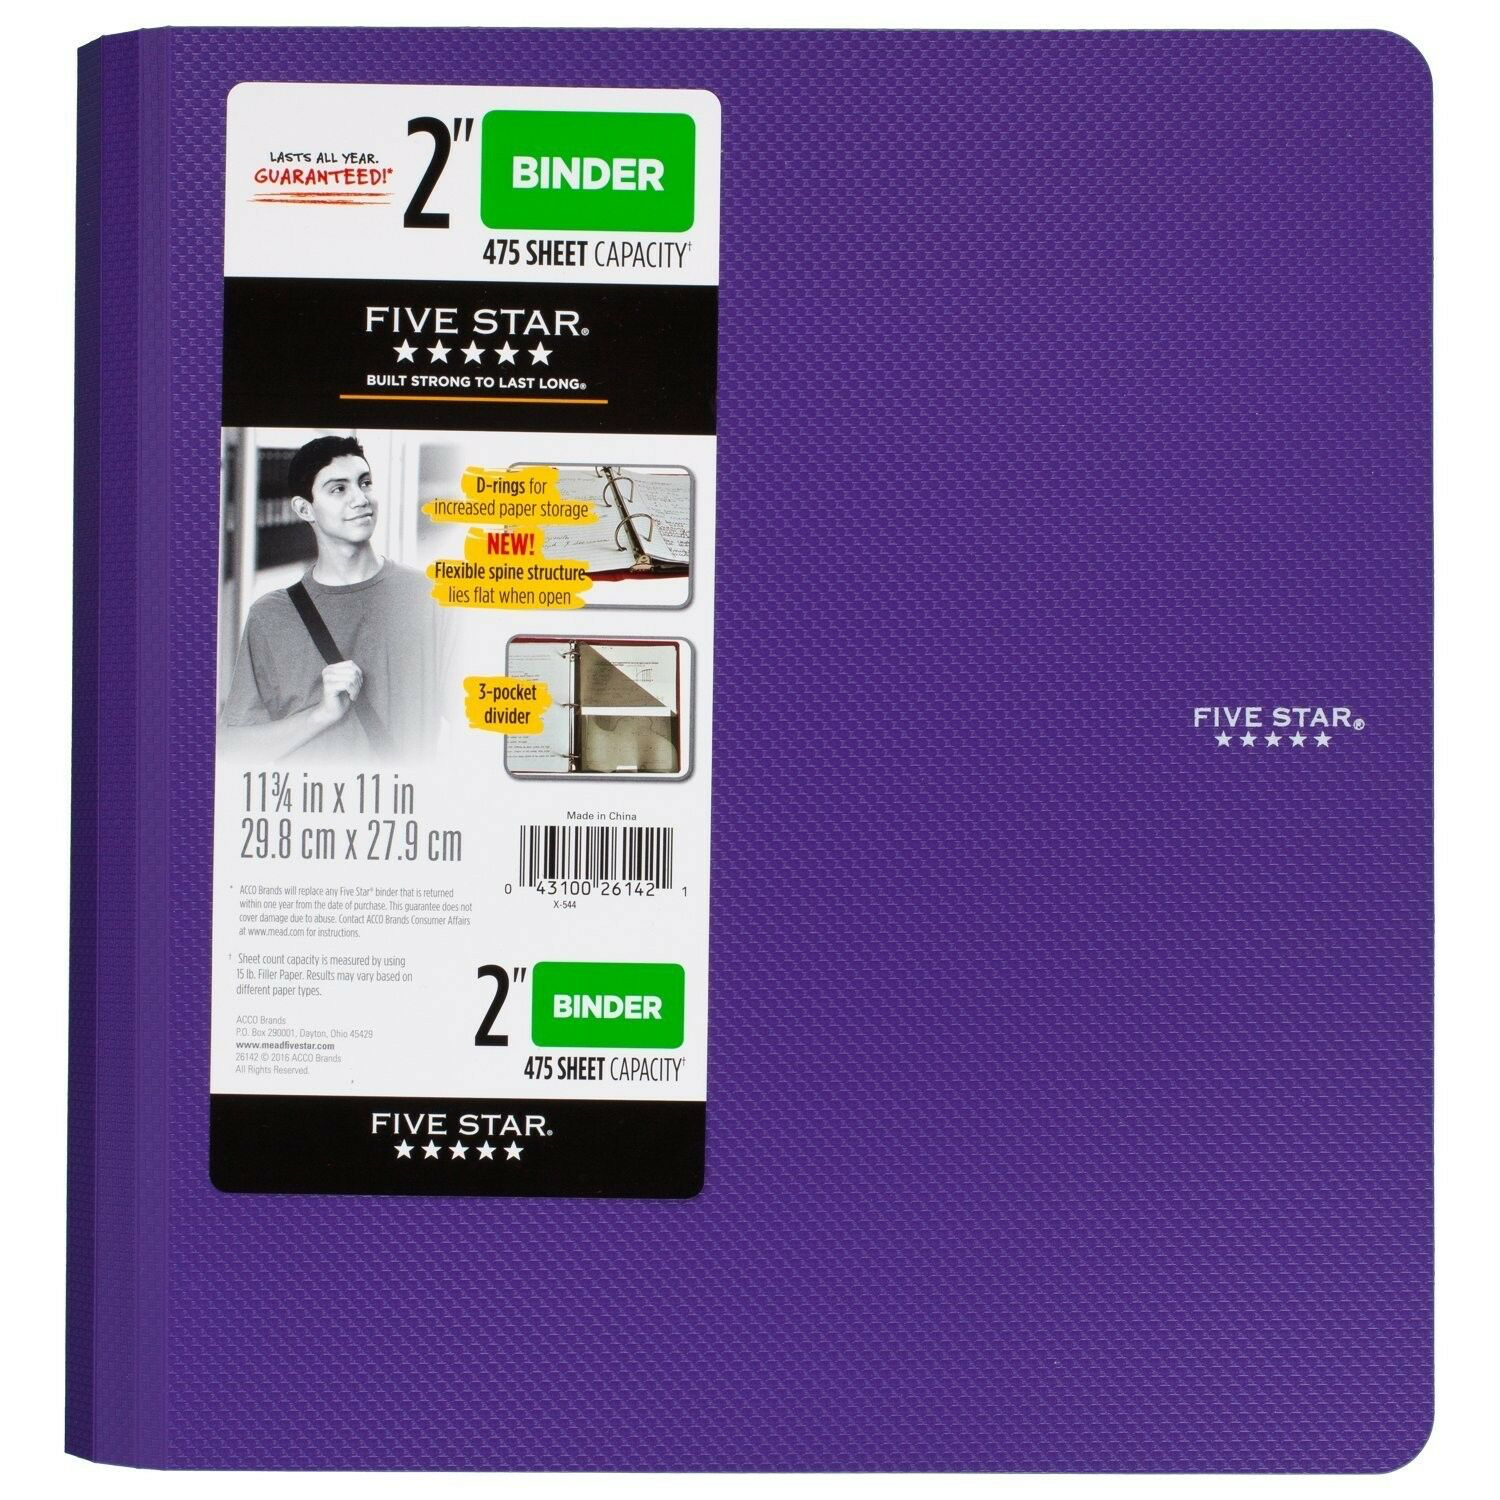 Five Star 2 Inch 3 Ring Binder Plastic Royal Purple 73308 Price 17 04 Easy Ordering Magnificent Price Star Binder Loose Leaf Paper Five Star